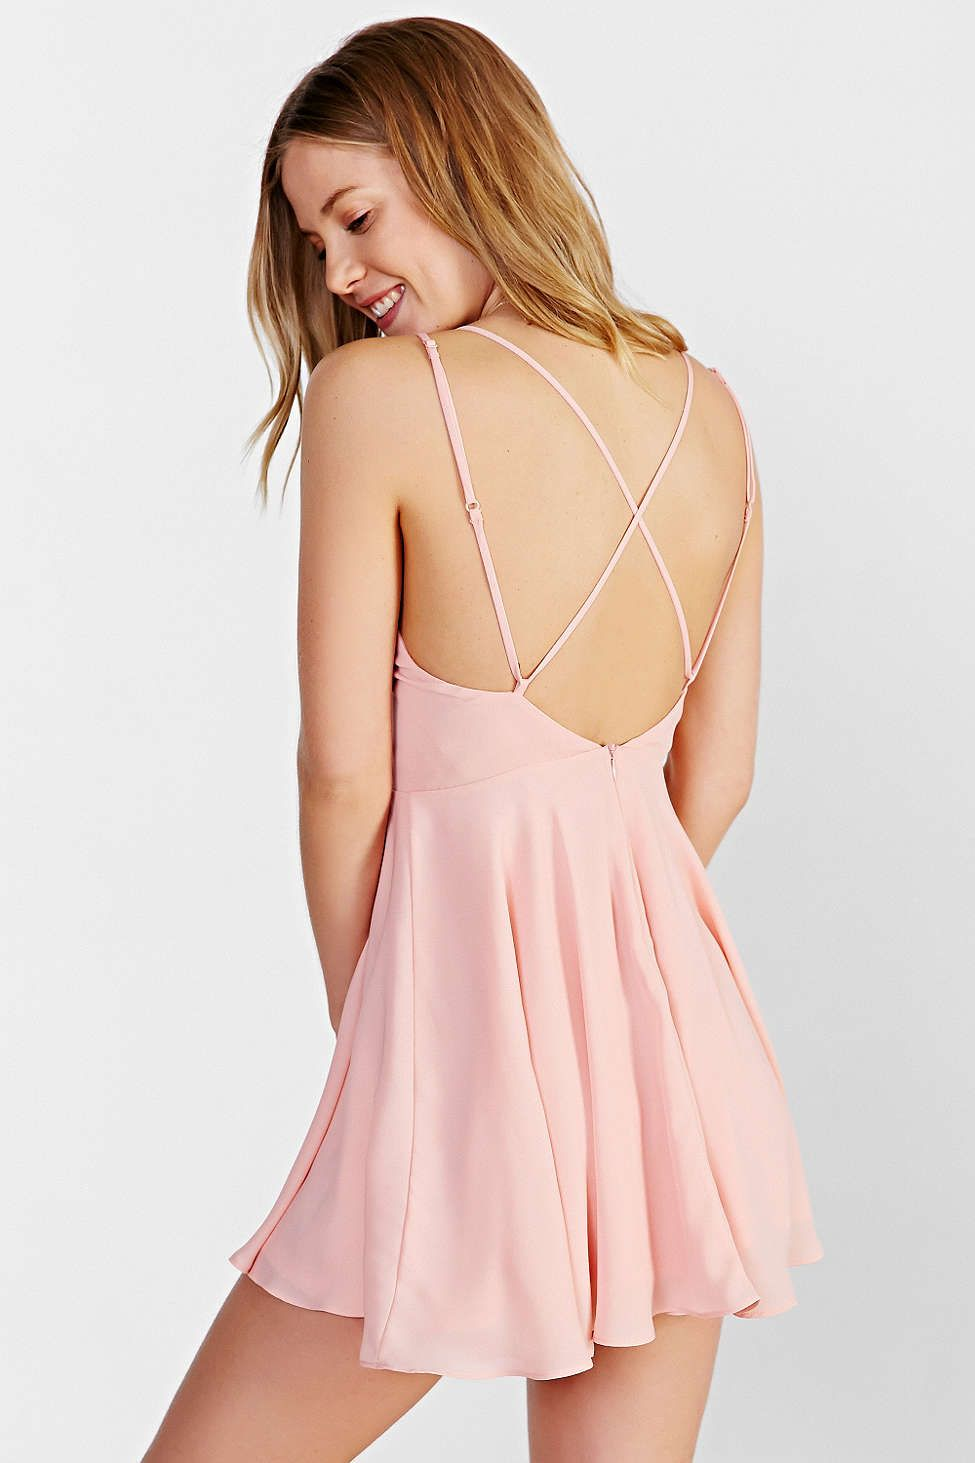 c943090e5318 Sparkle & Fade Strappy Chiffon Skater Dress | Fashion?!? | Dresses ...